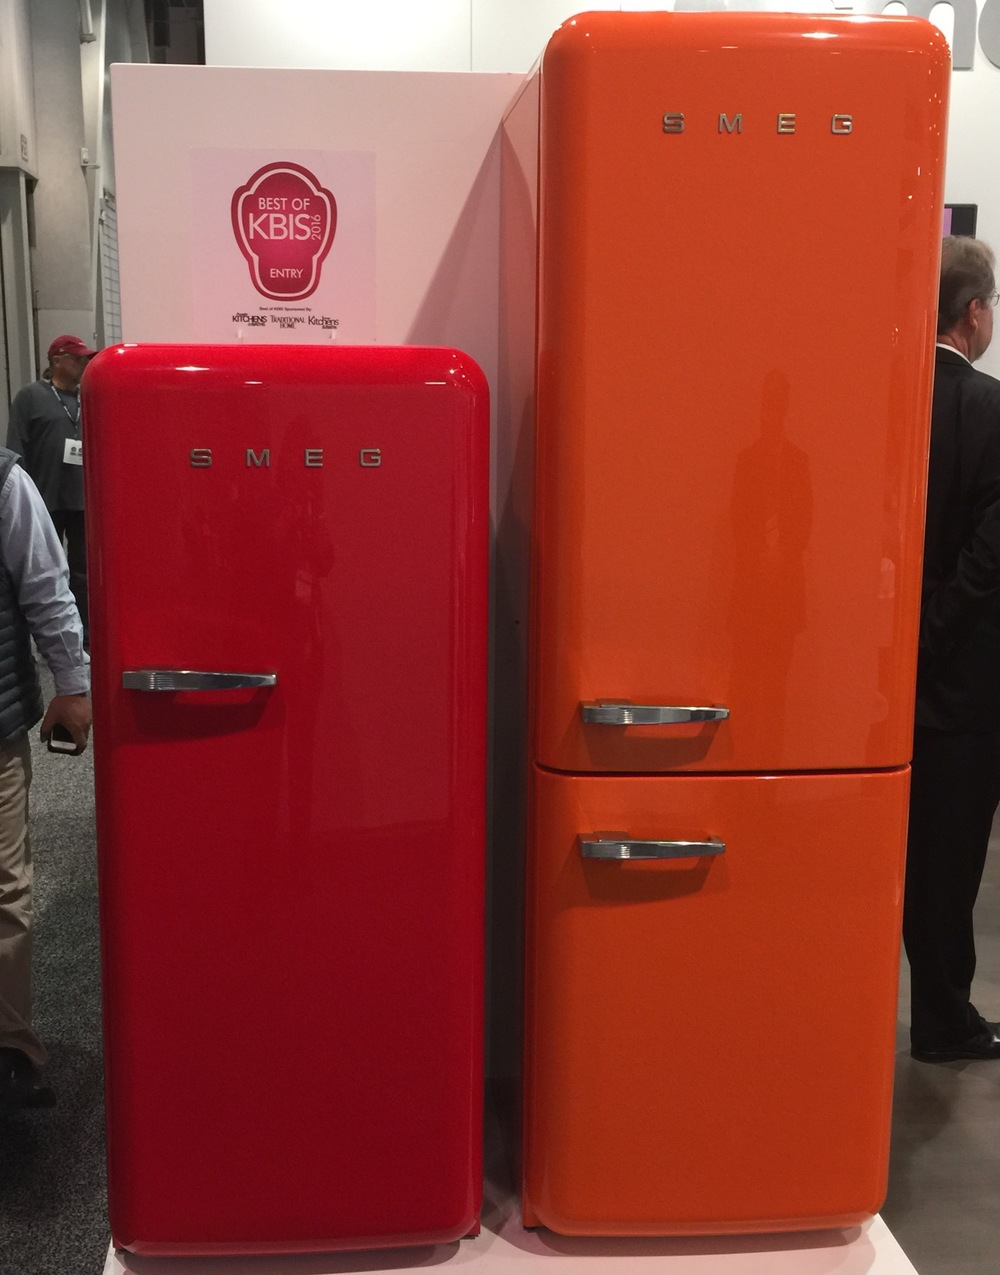 Colorful Retro Smeg Refrigerators - seen at KBIS2016